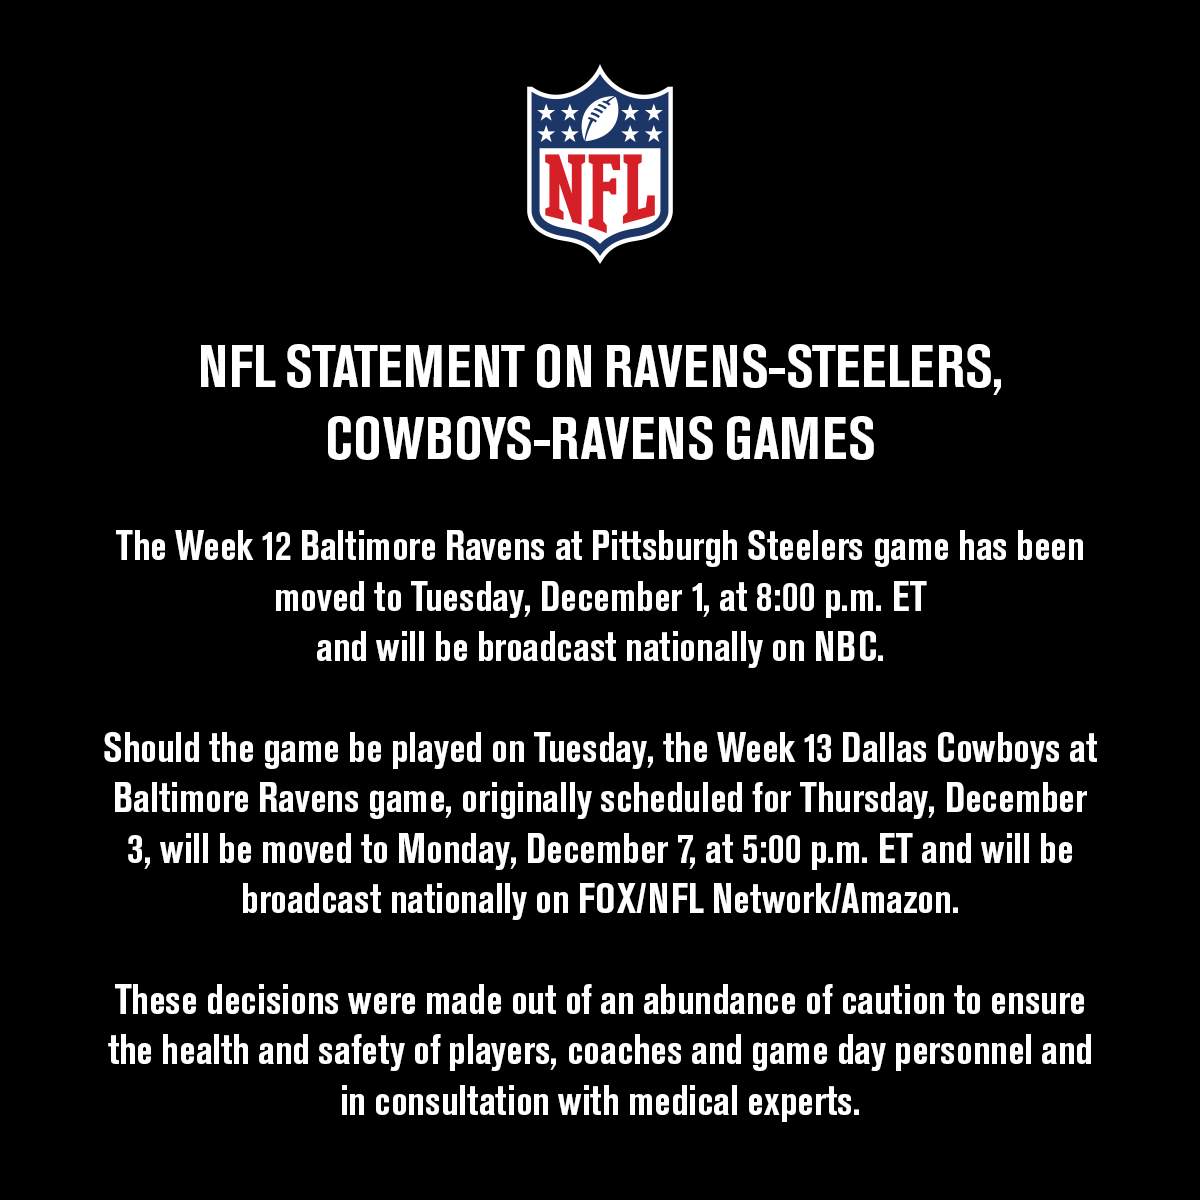 Replying to @NFL: